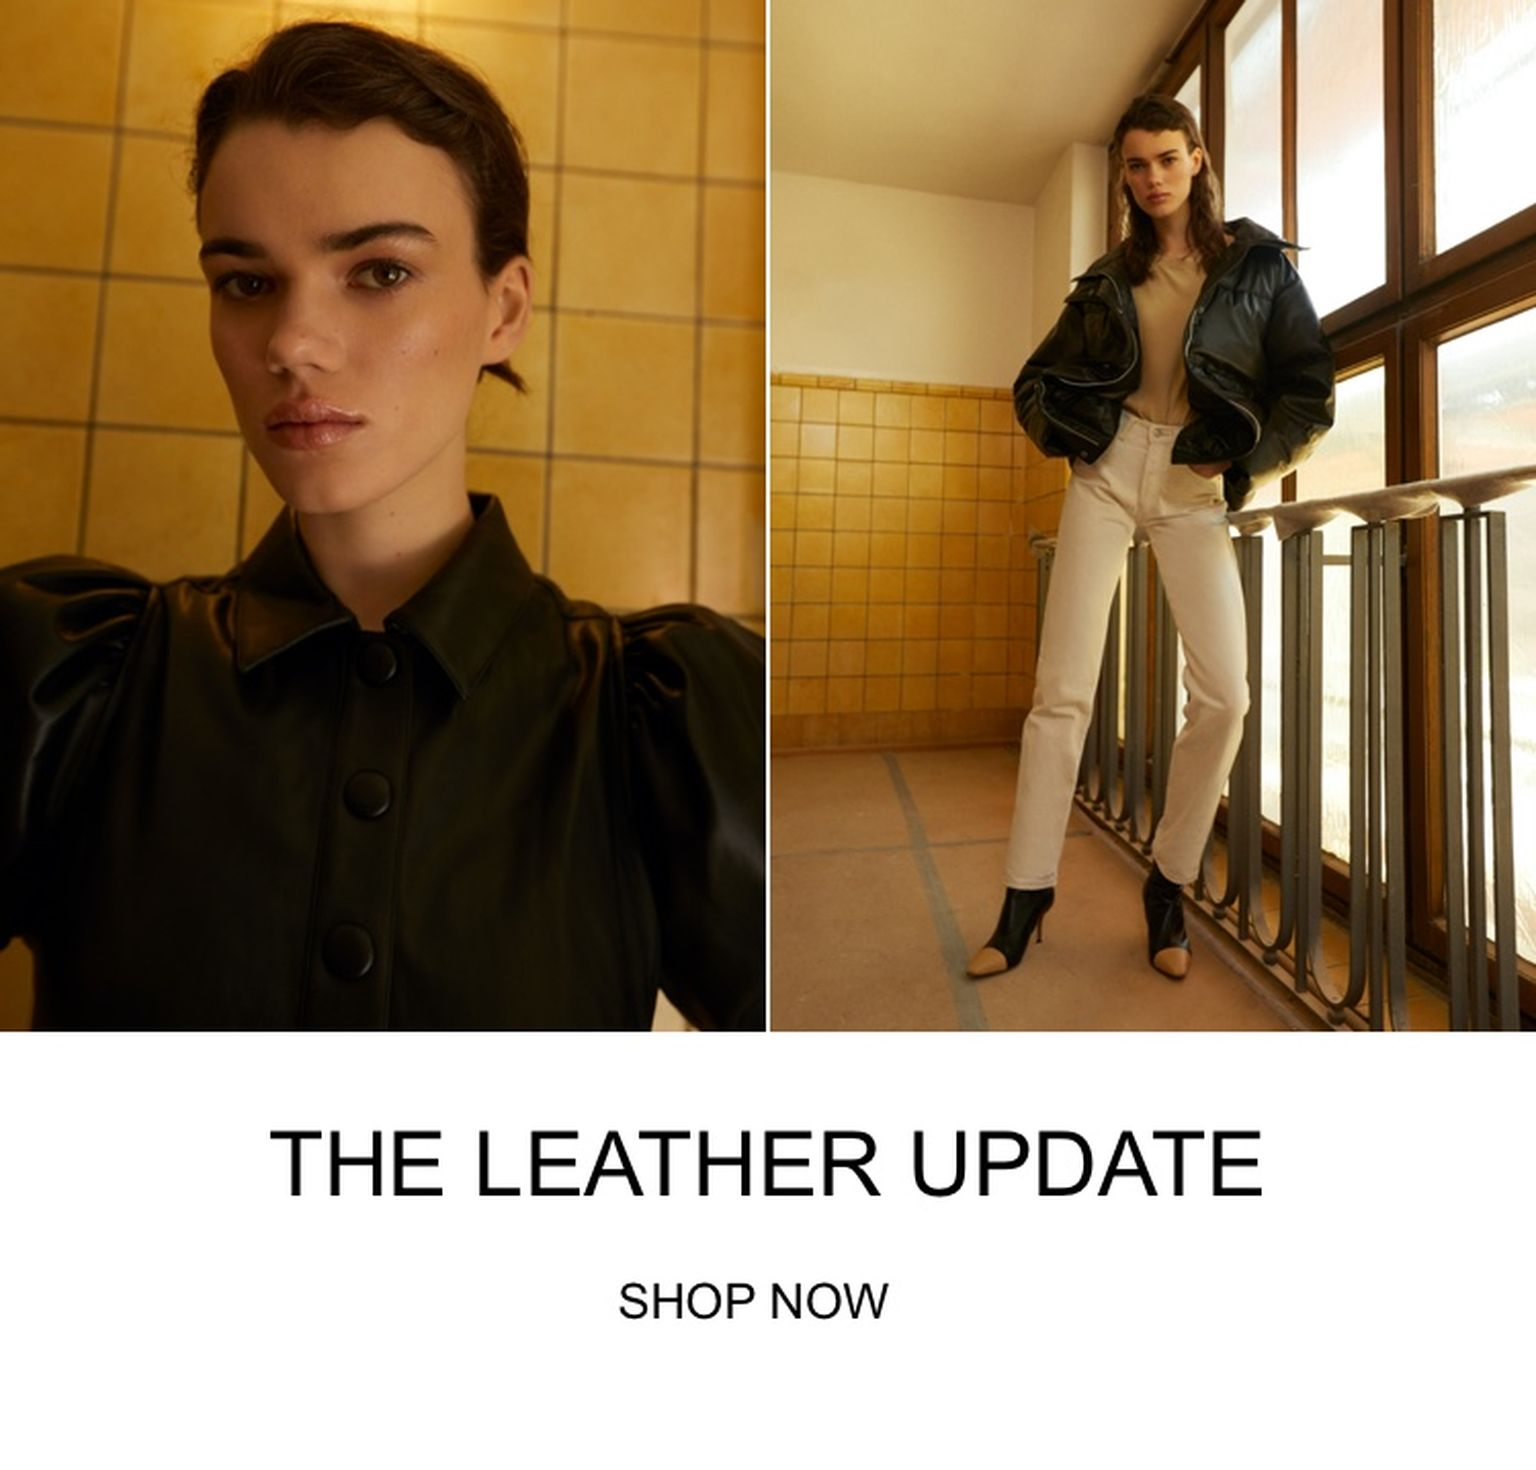 the leather update